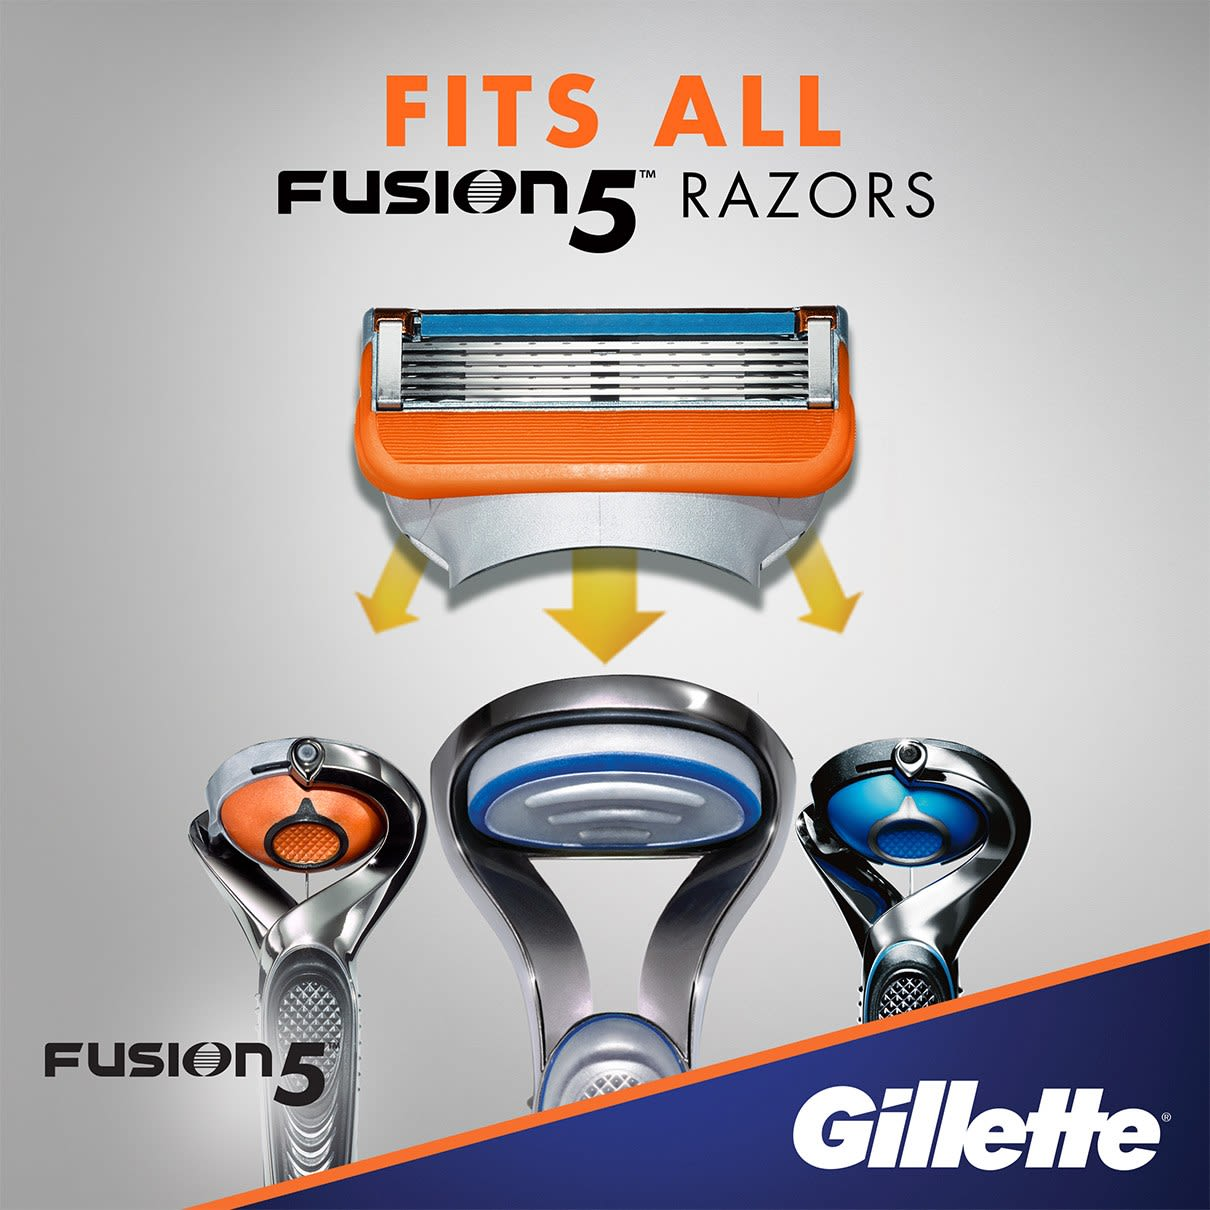 Fits all Fusion5 razors